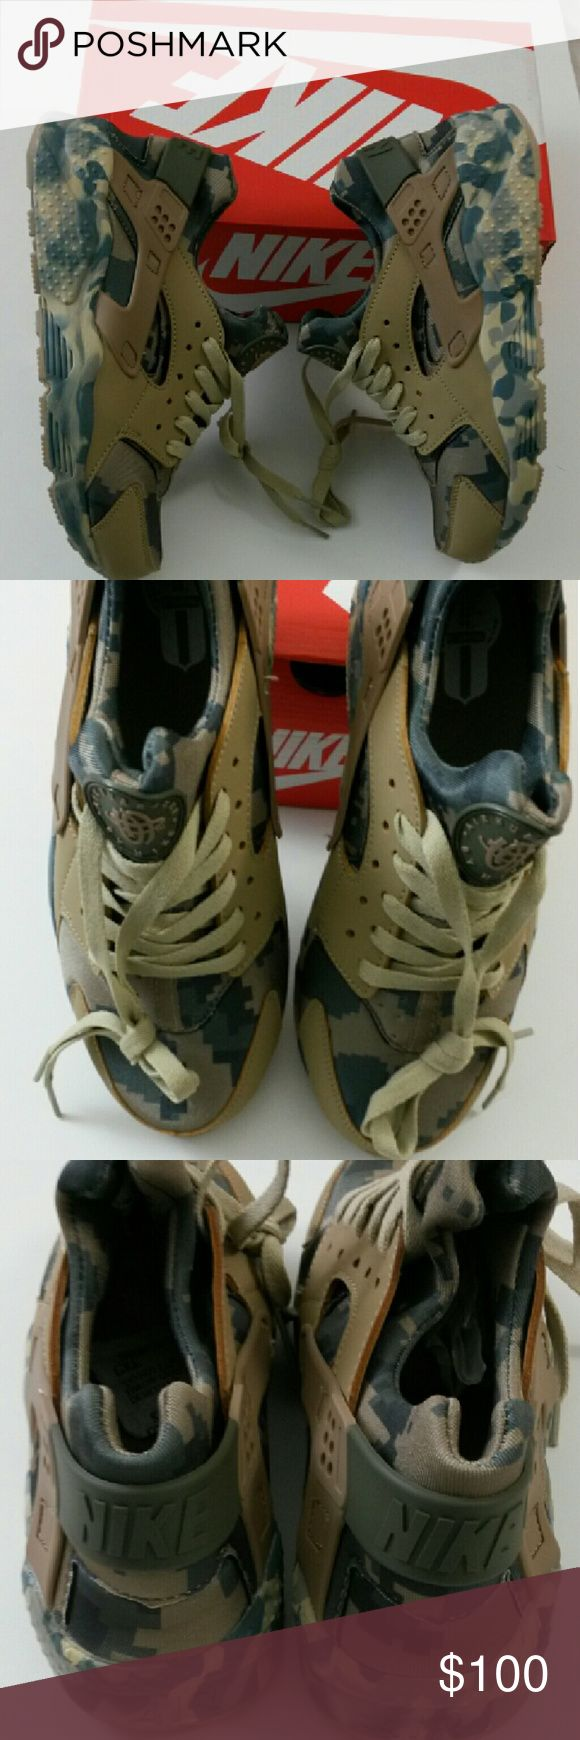 Nike Huarache Camo Men's Size 8 NIB Brand new camouflage style Huarache shoes never worn with box! Nike Shoes Athletic Shoes